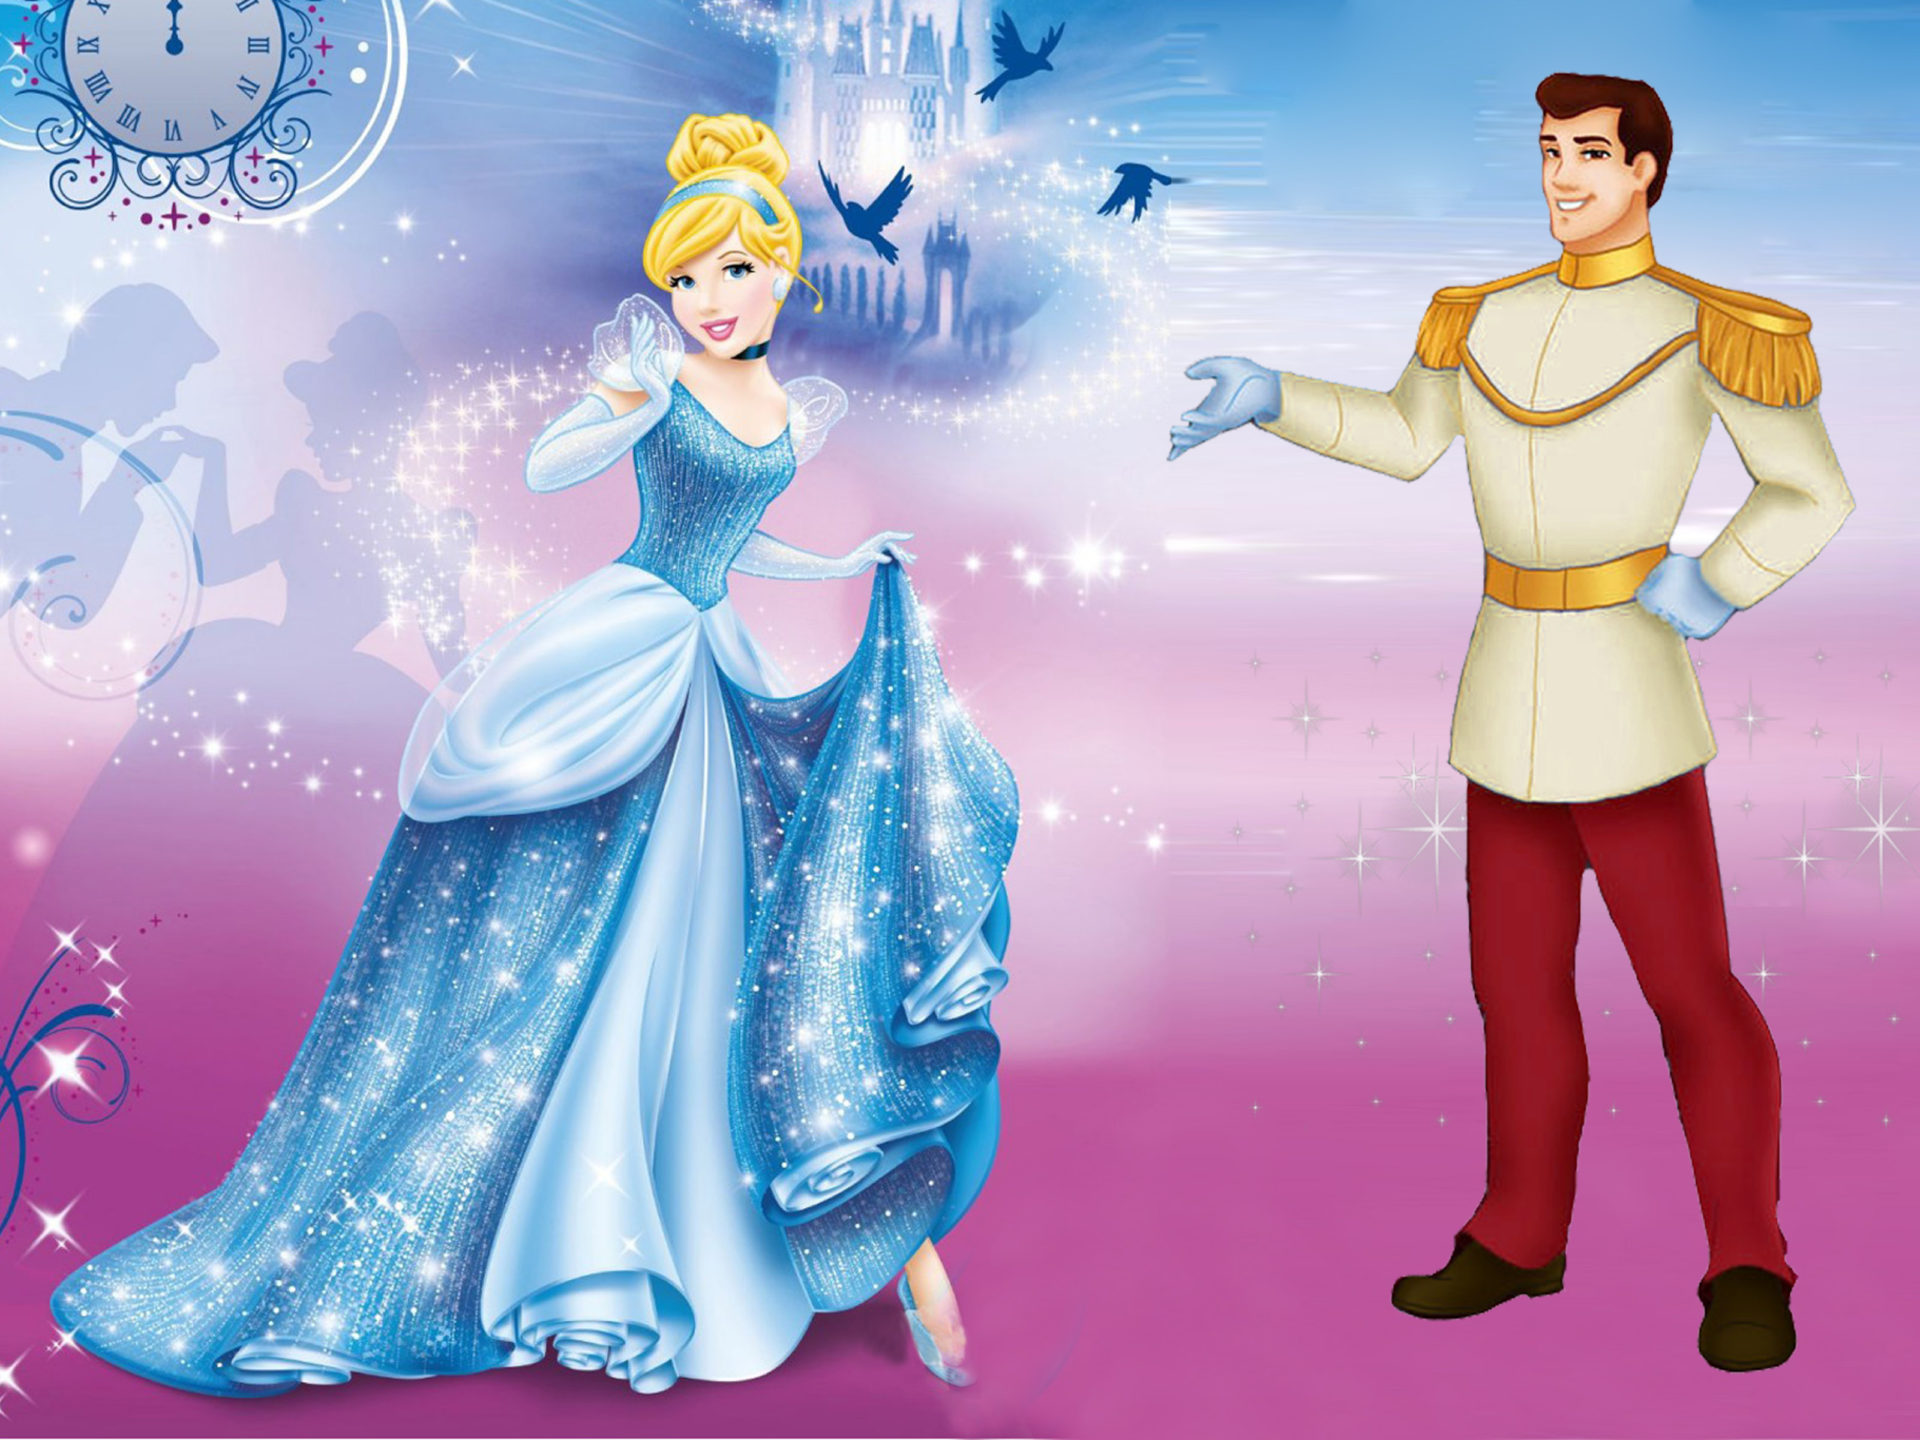 Free Car Wallpaper Download Mobile Disney Princess Cinderella And Prince Charming Desktop